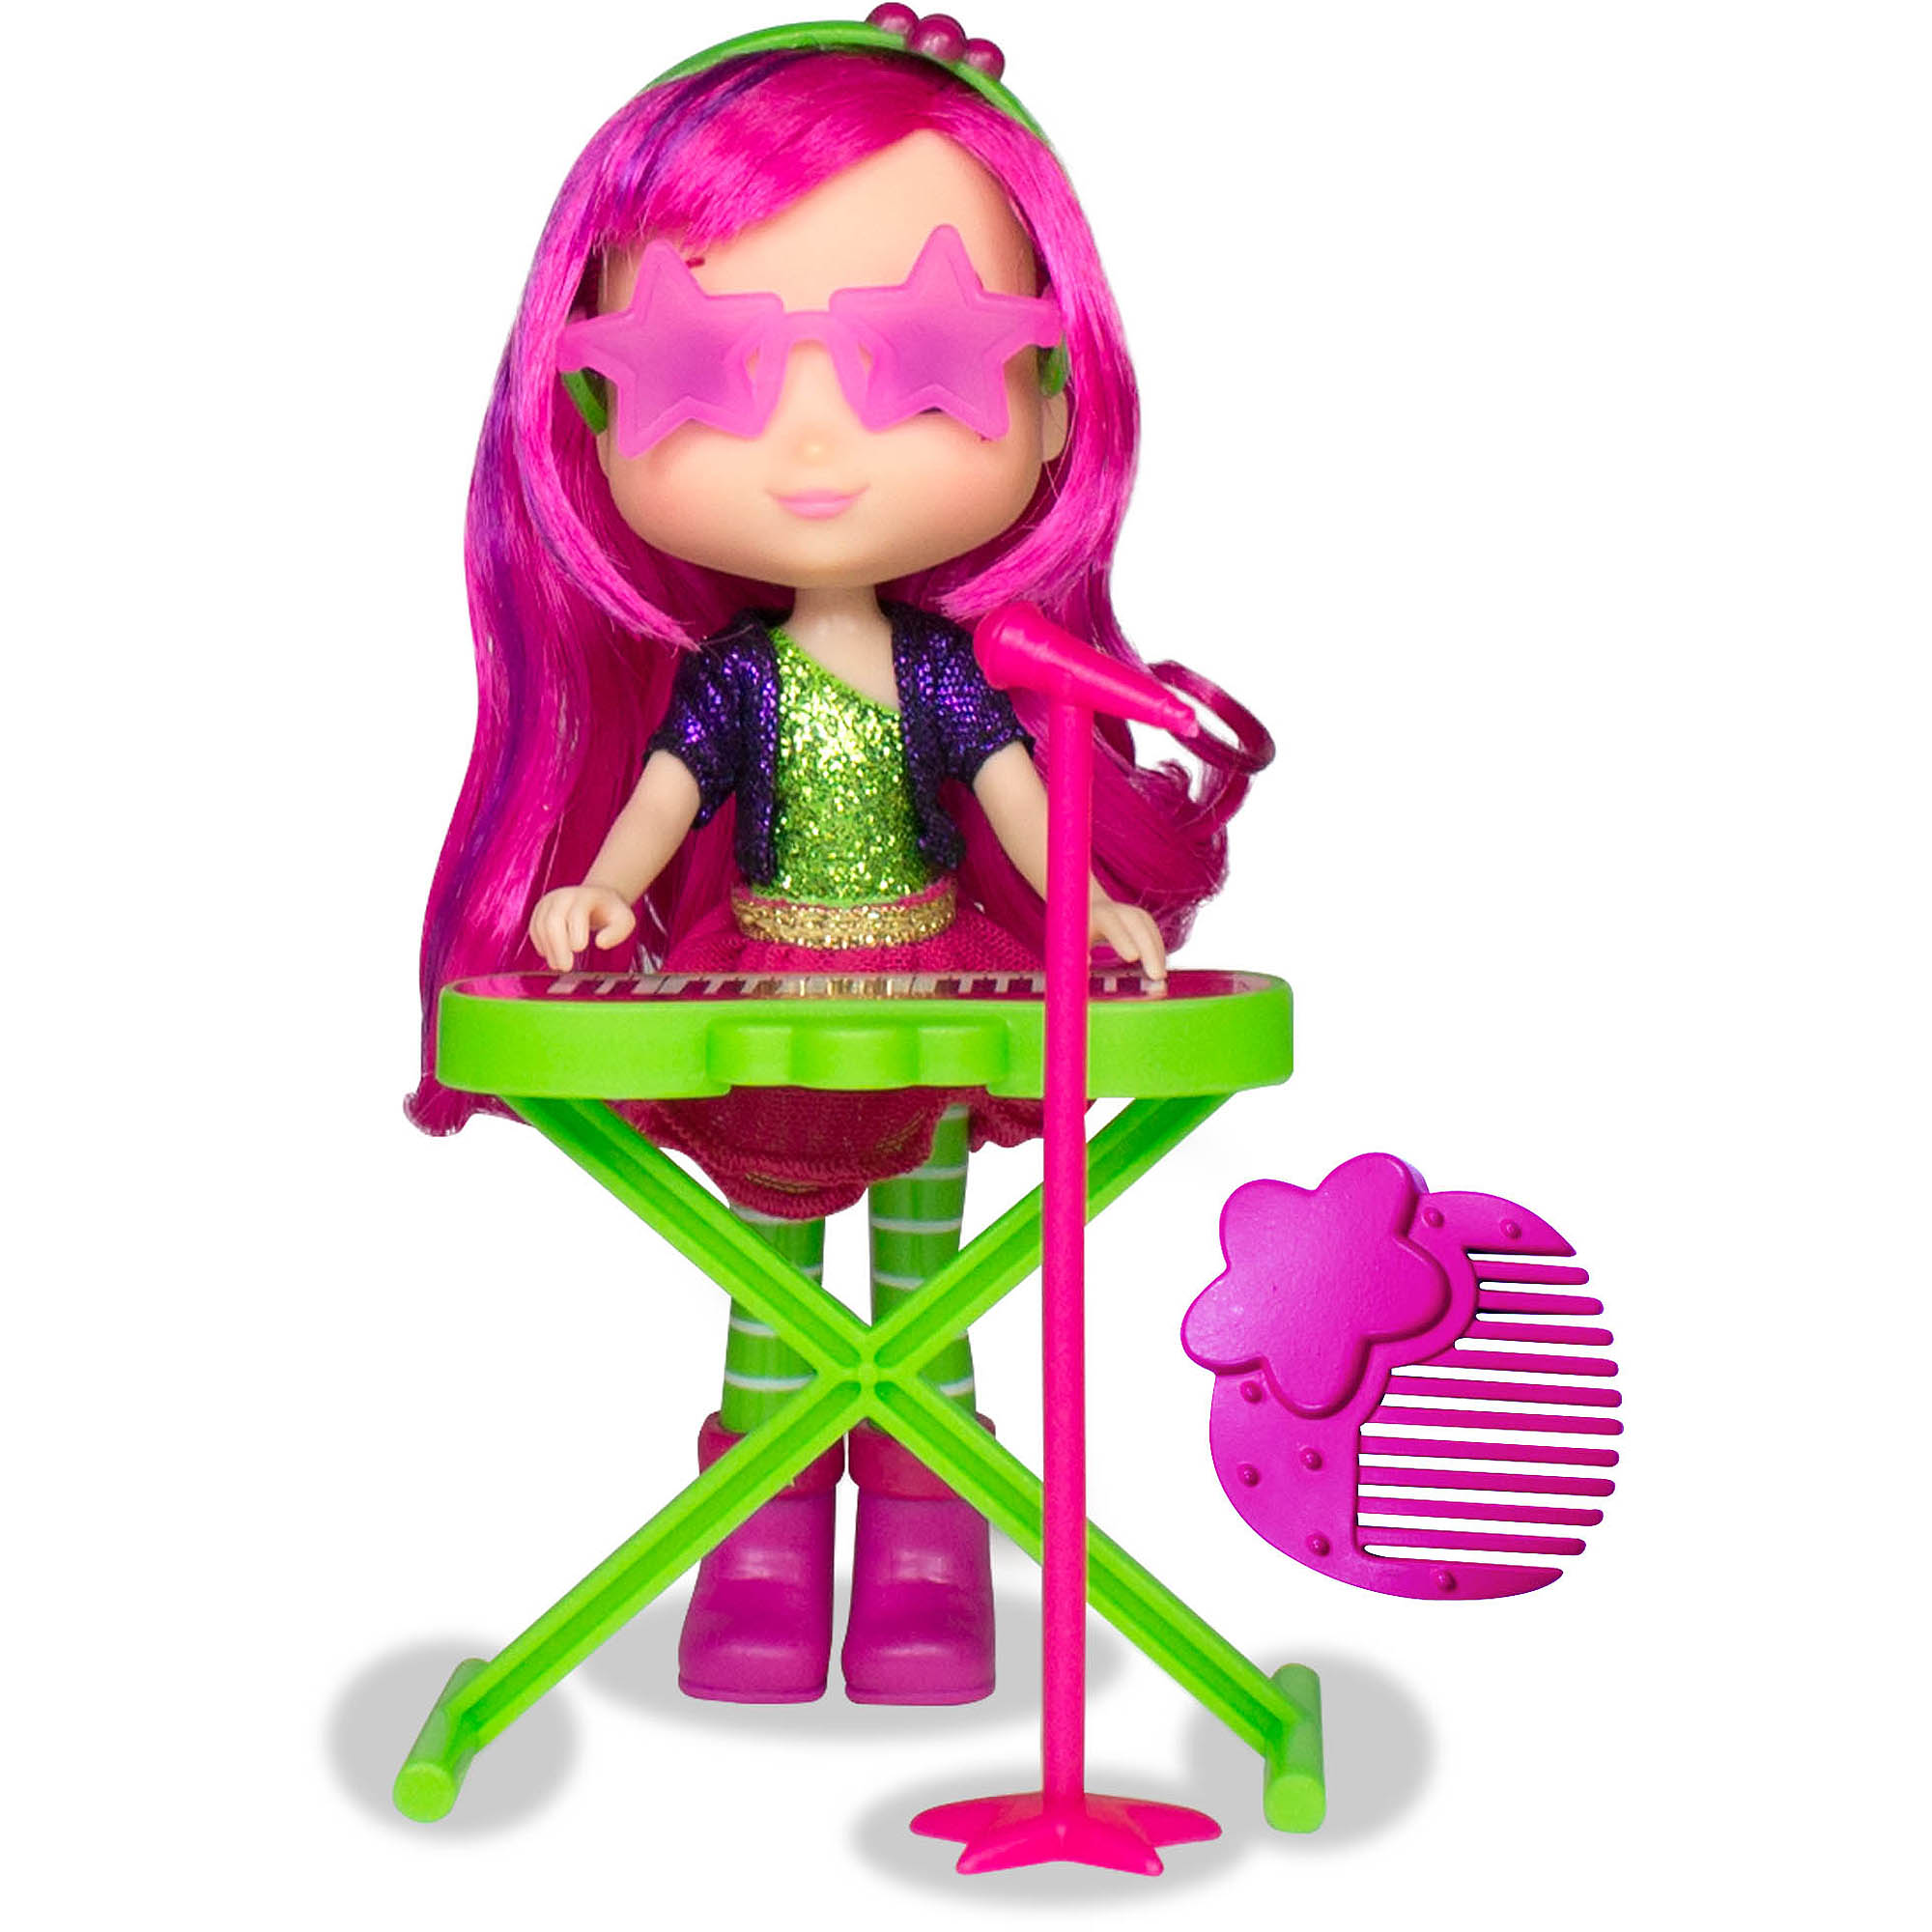 Raspberry Torte Doll with Keyboard by The Bridge Direct